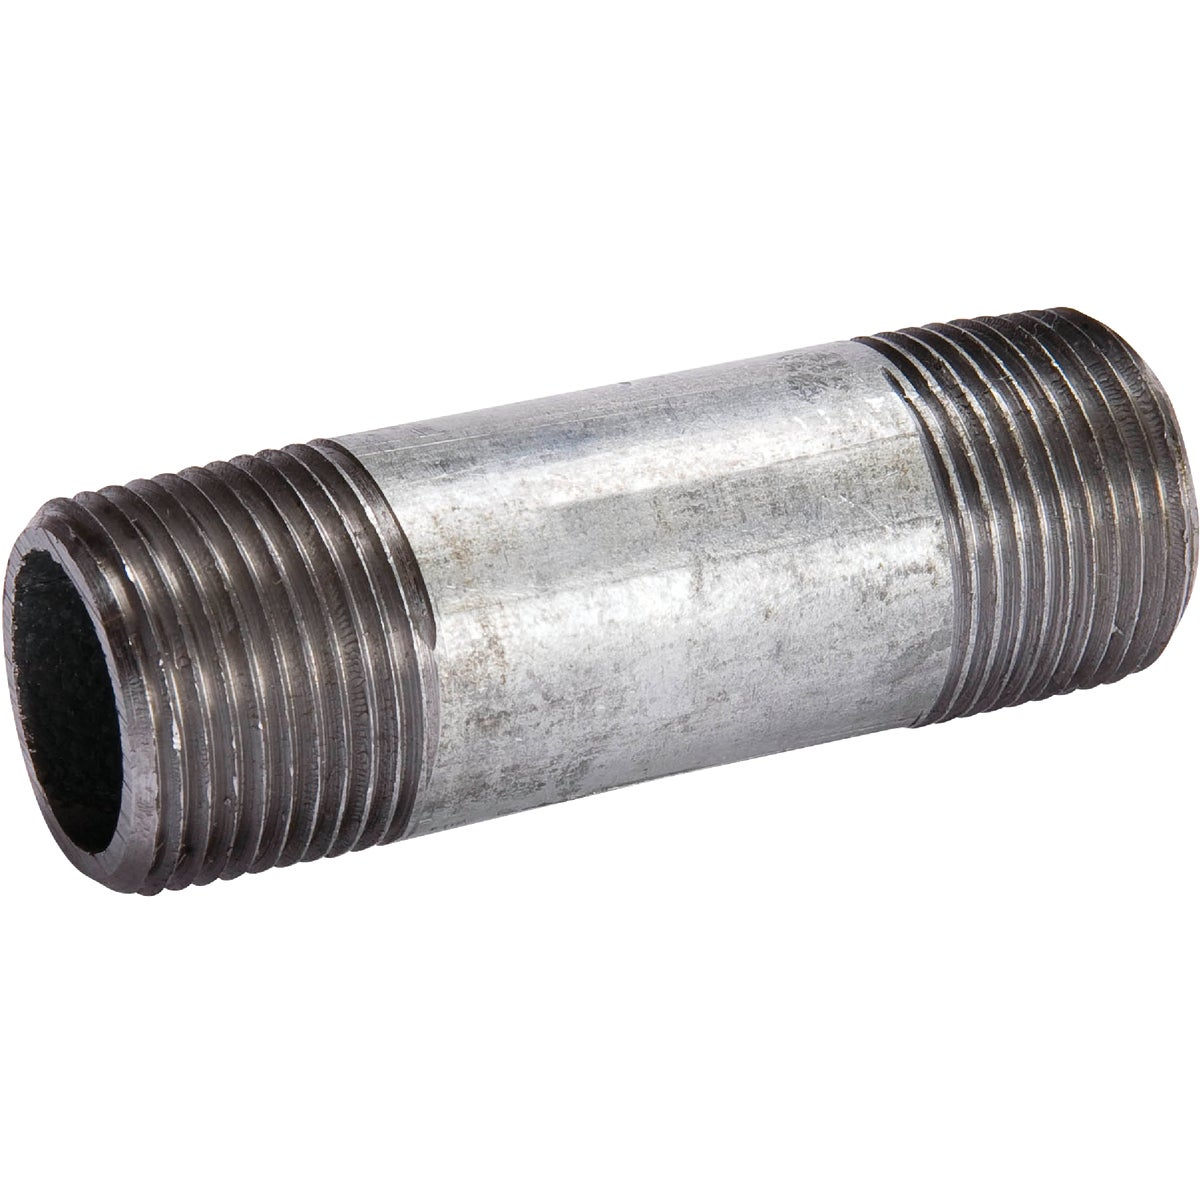 1/4X1-1/2 GALV NIPPLE - 10201 by Southland Pipe Nippl